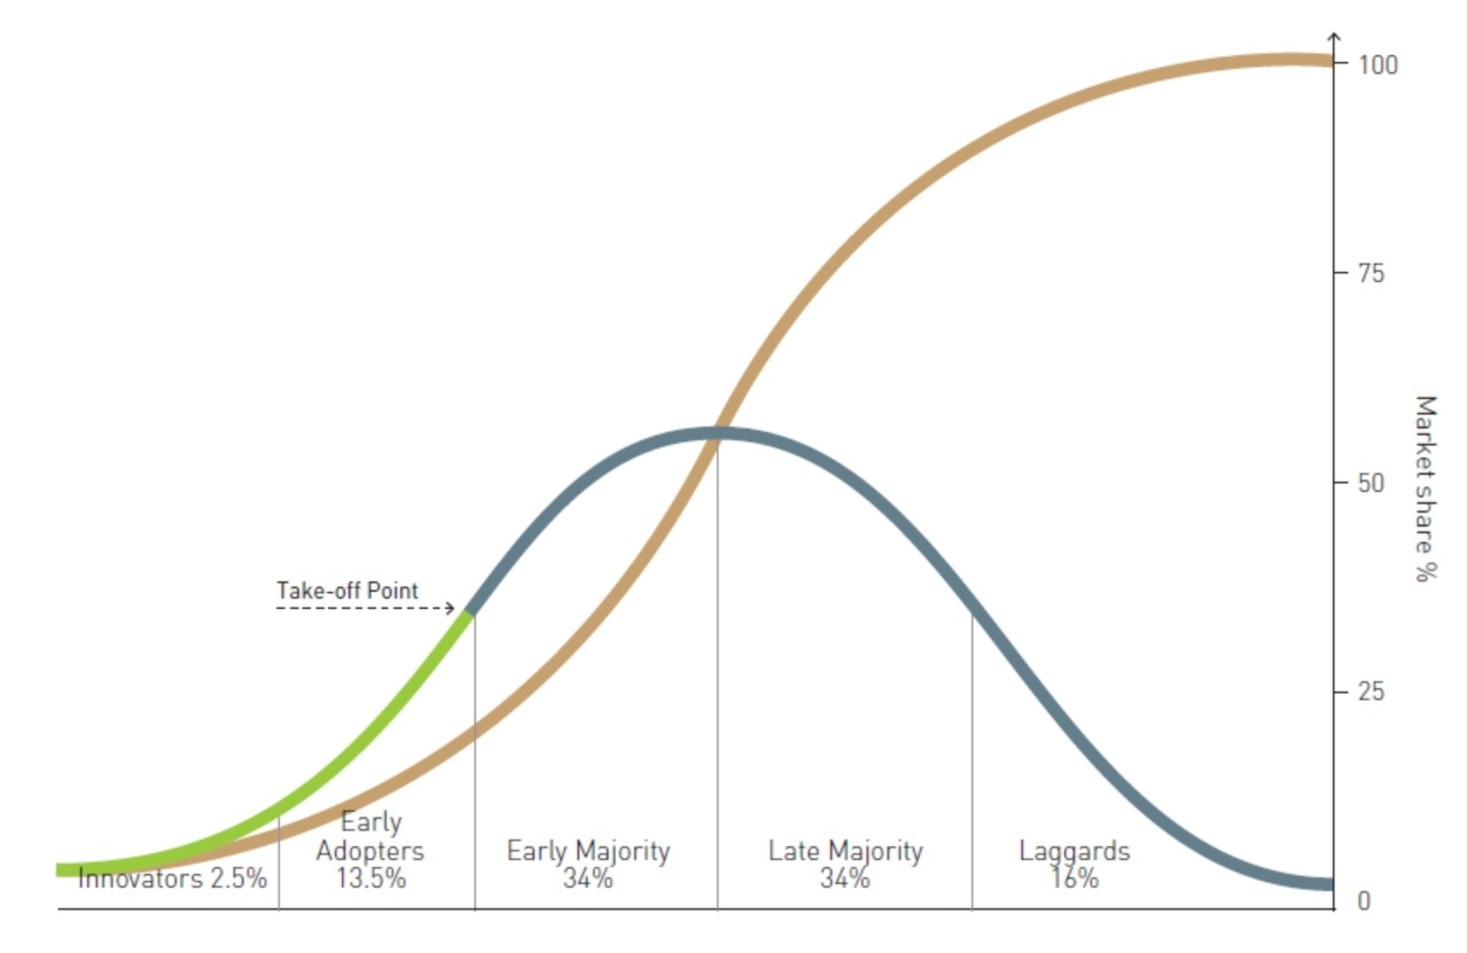 The Diffusion of Innovation Curve by Rogers